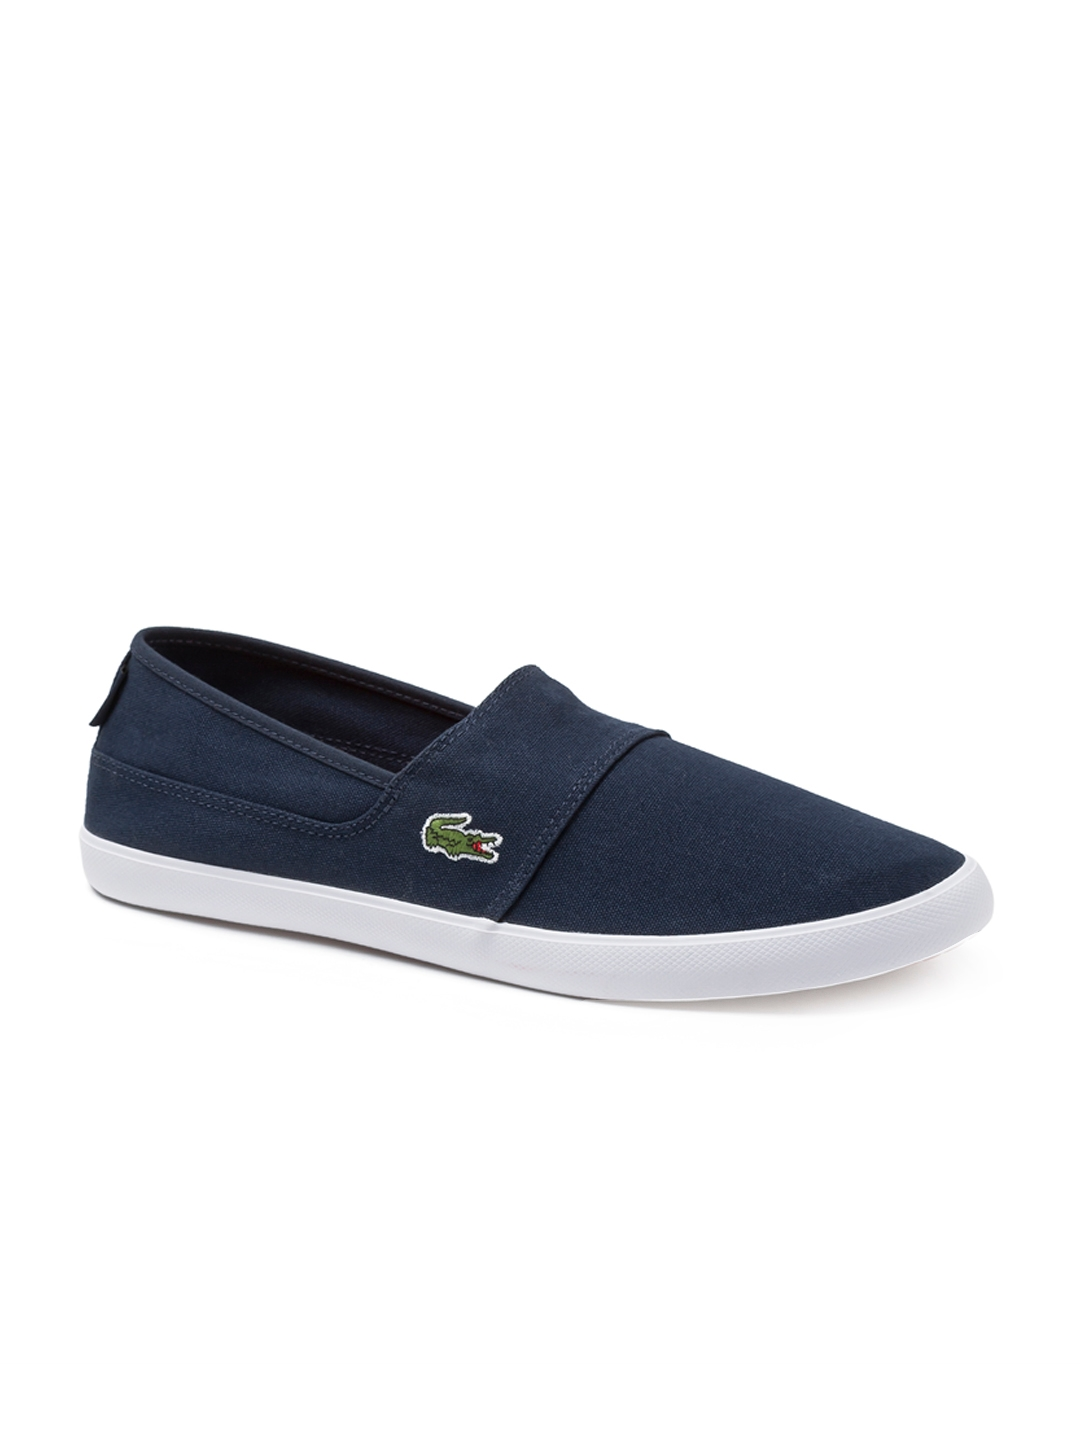 81723ae8a Buy Lacoste Men Blue Slip On Sneakers - Casual Shoes for Men 4304658 ...